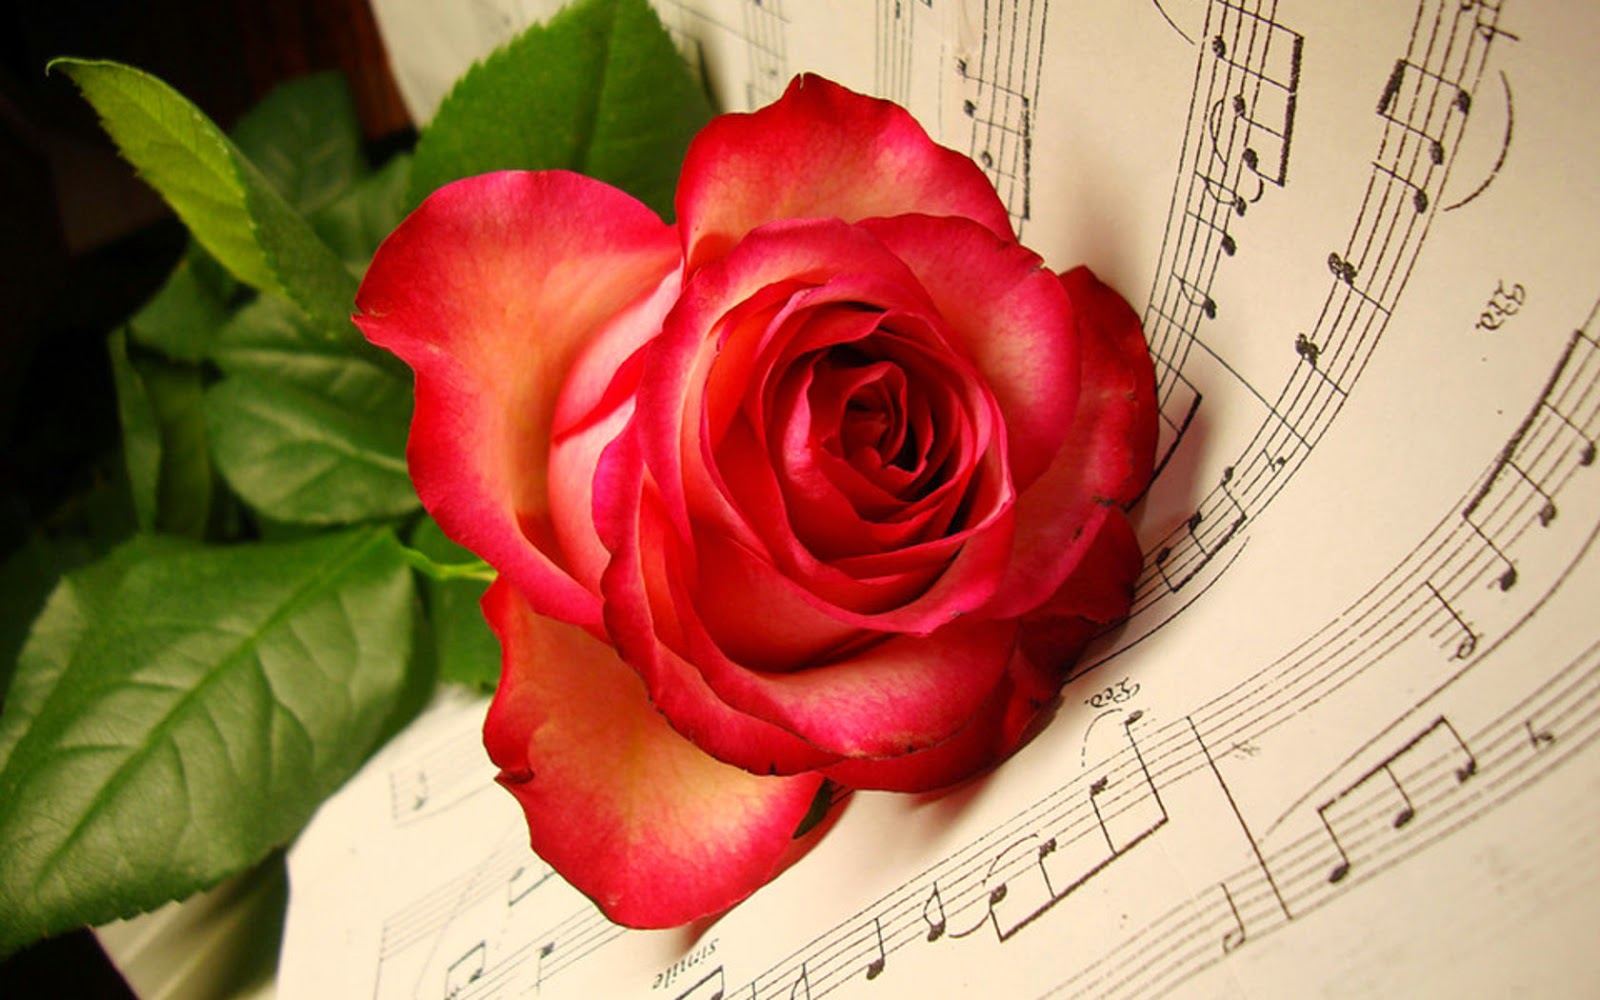 Red rose hd wallpapers for wide desktop laptop screen - Hd rose wallpaper for android mobile ...